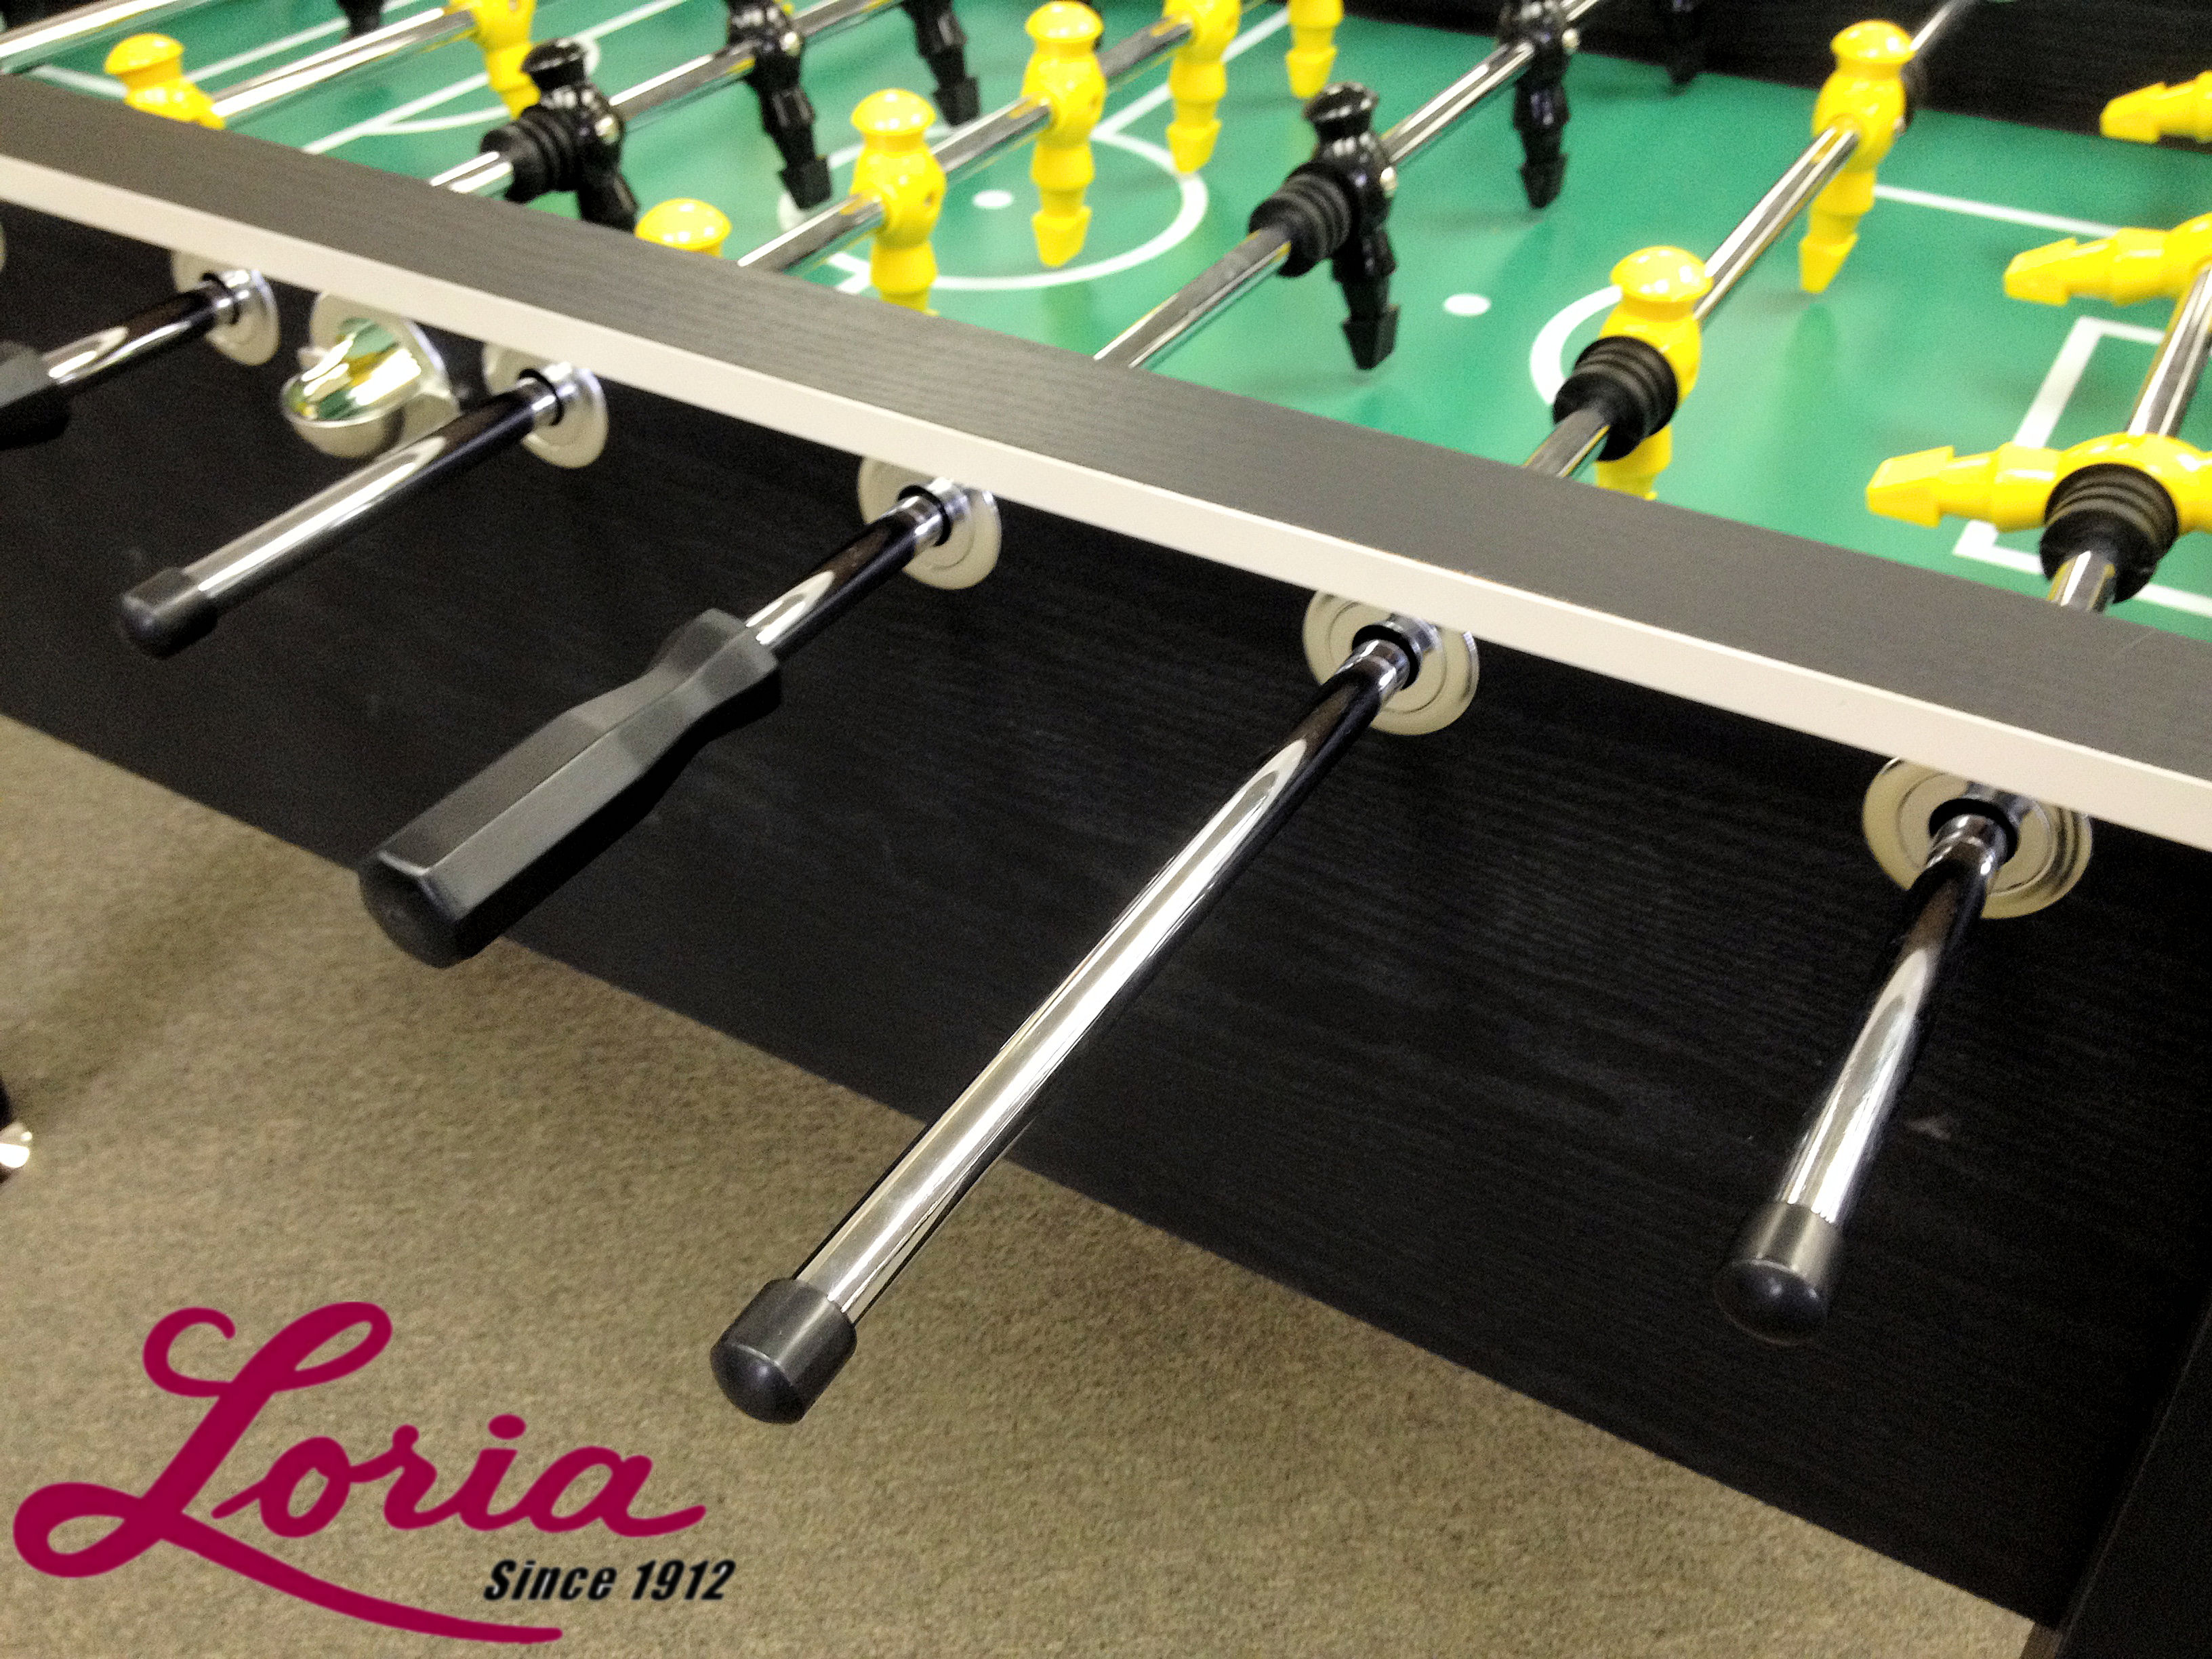 Imperial Striker Foosball table Loria Awards